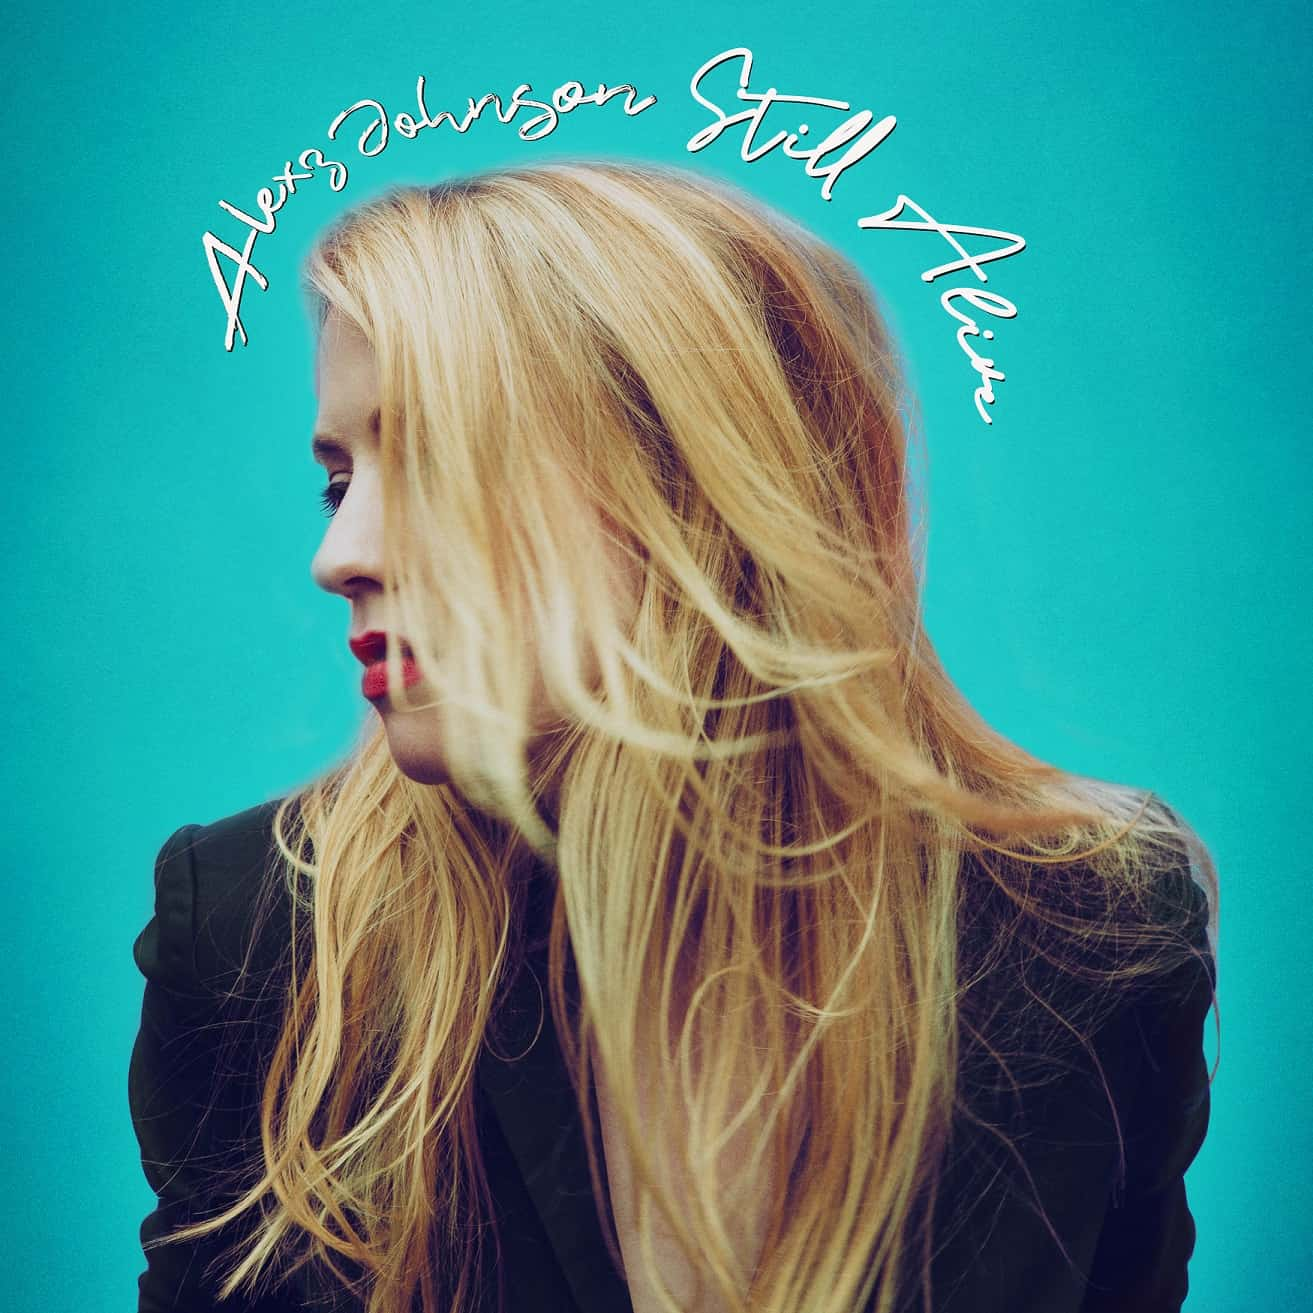 Still Alive - Alexz Johnson